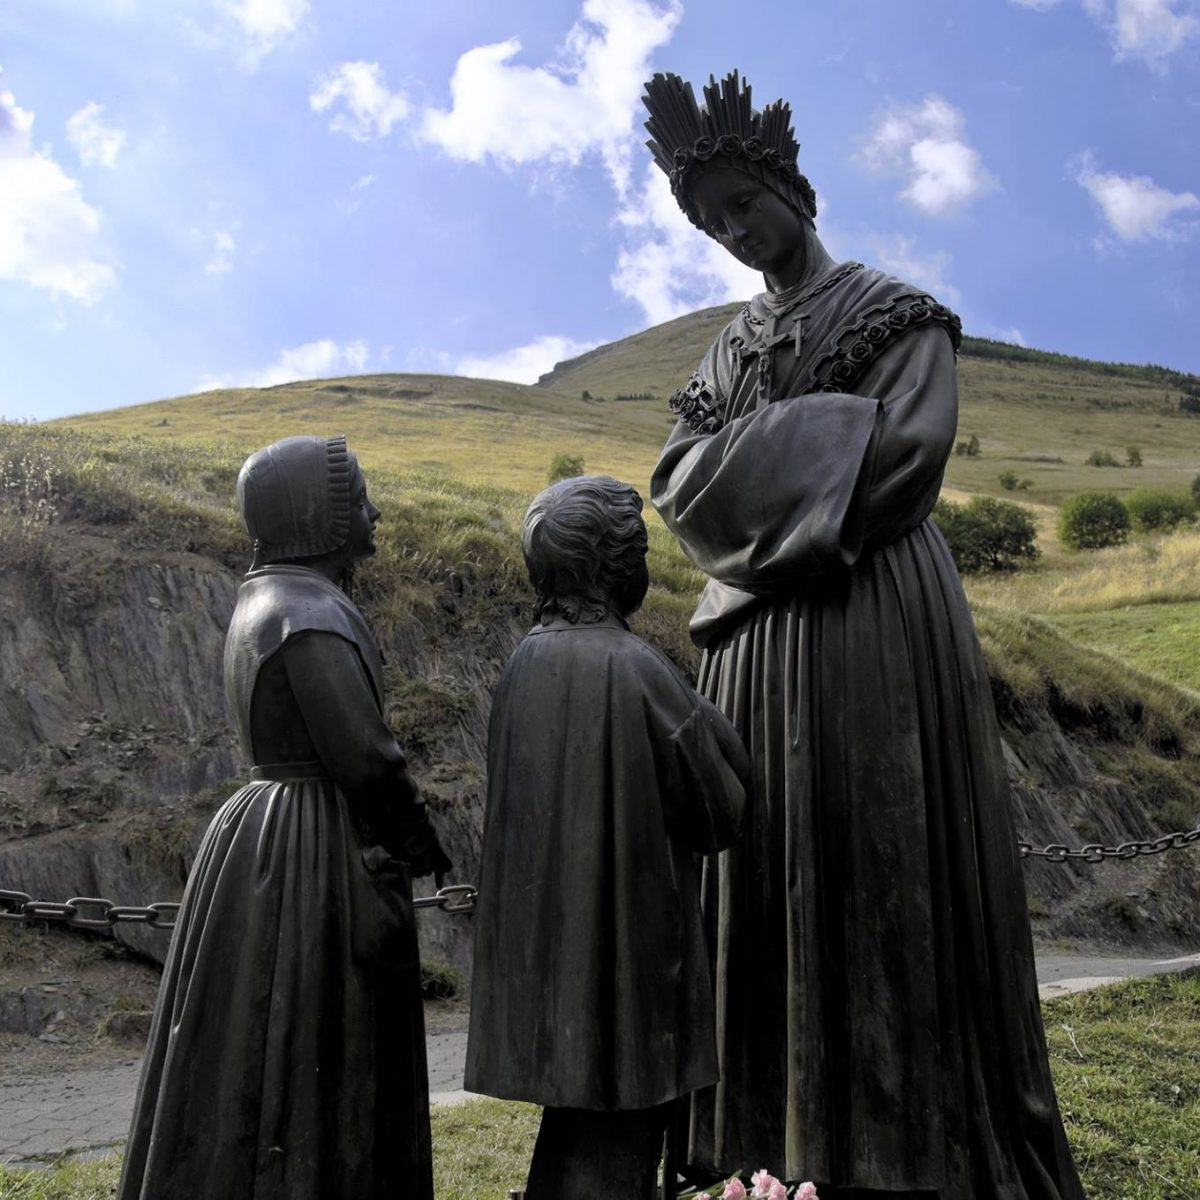 At La Salette 175yrs ago: a prophetic warning of 2 Popes